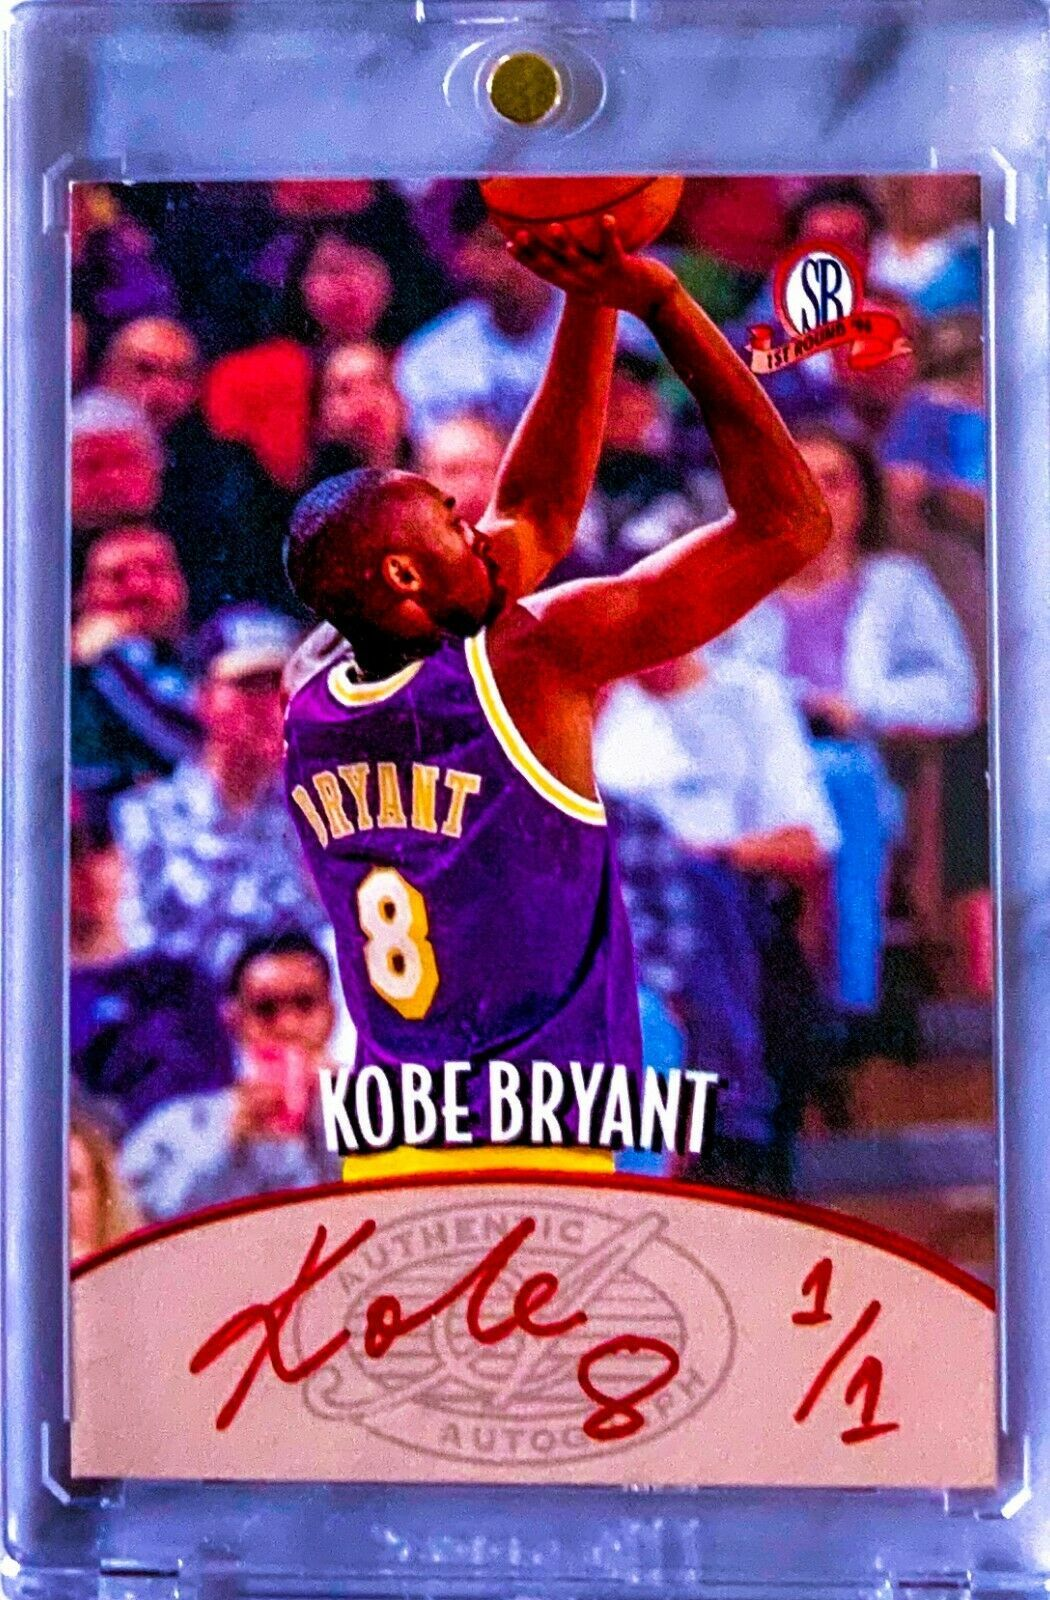 199697 kobe bryant score board 1st round rookie rc red on